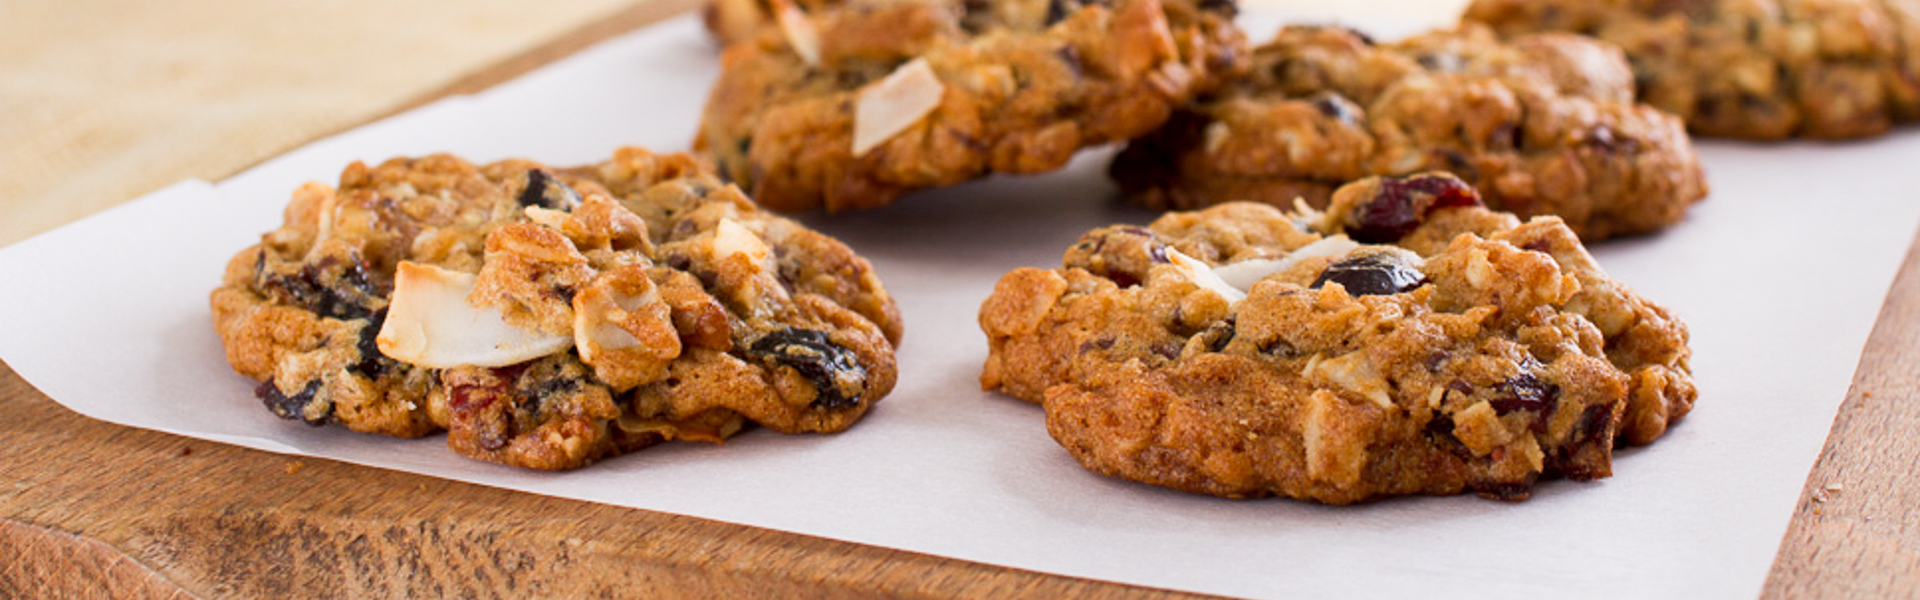 <p>Handfuls of prunes, nuts, chocolate, and coconut come together to make a rich, chewy, flavorful cookie inspired by trail mix.</p>